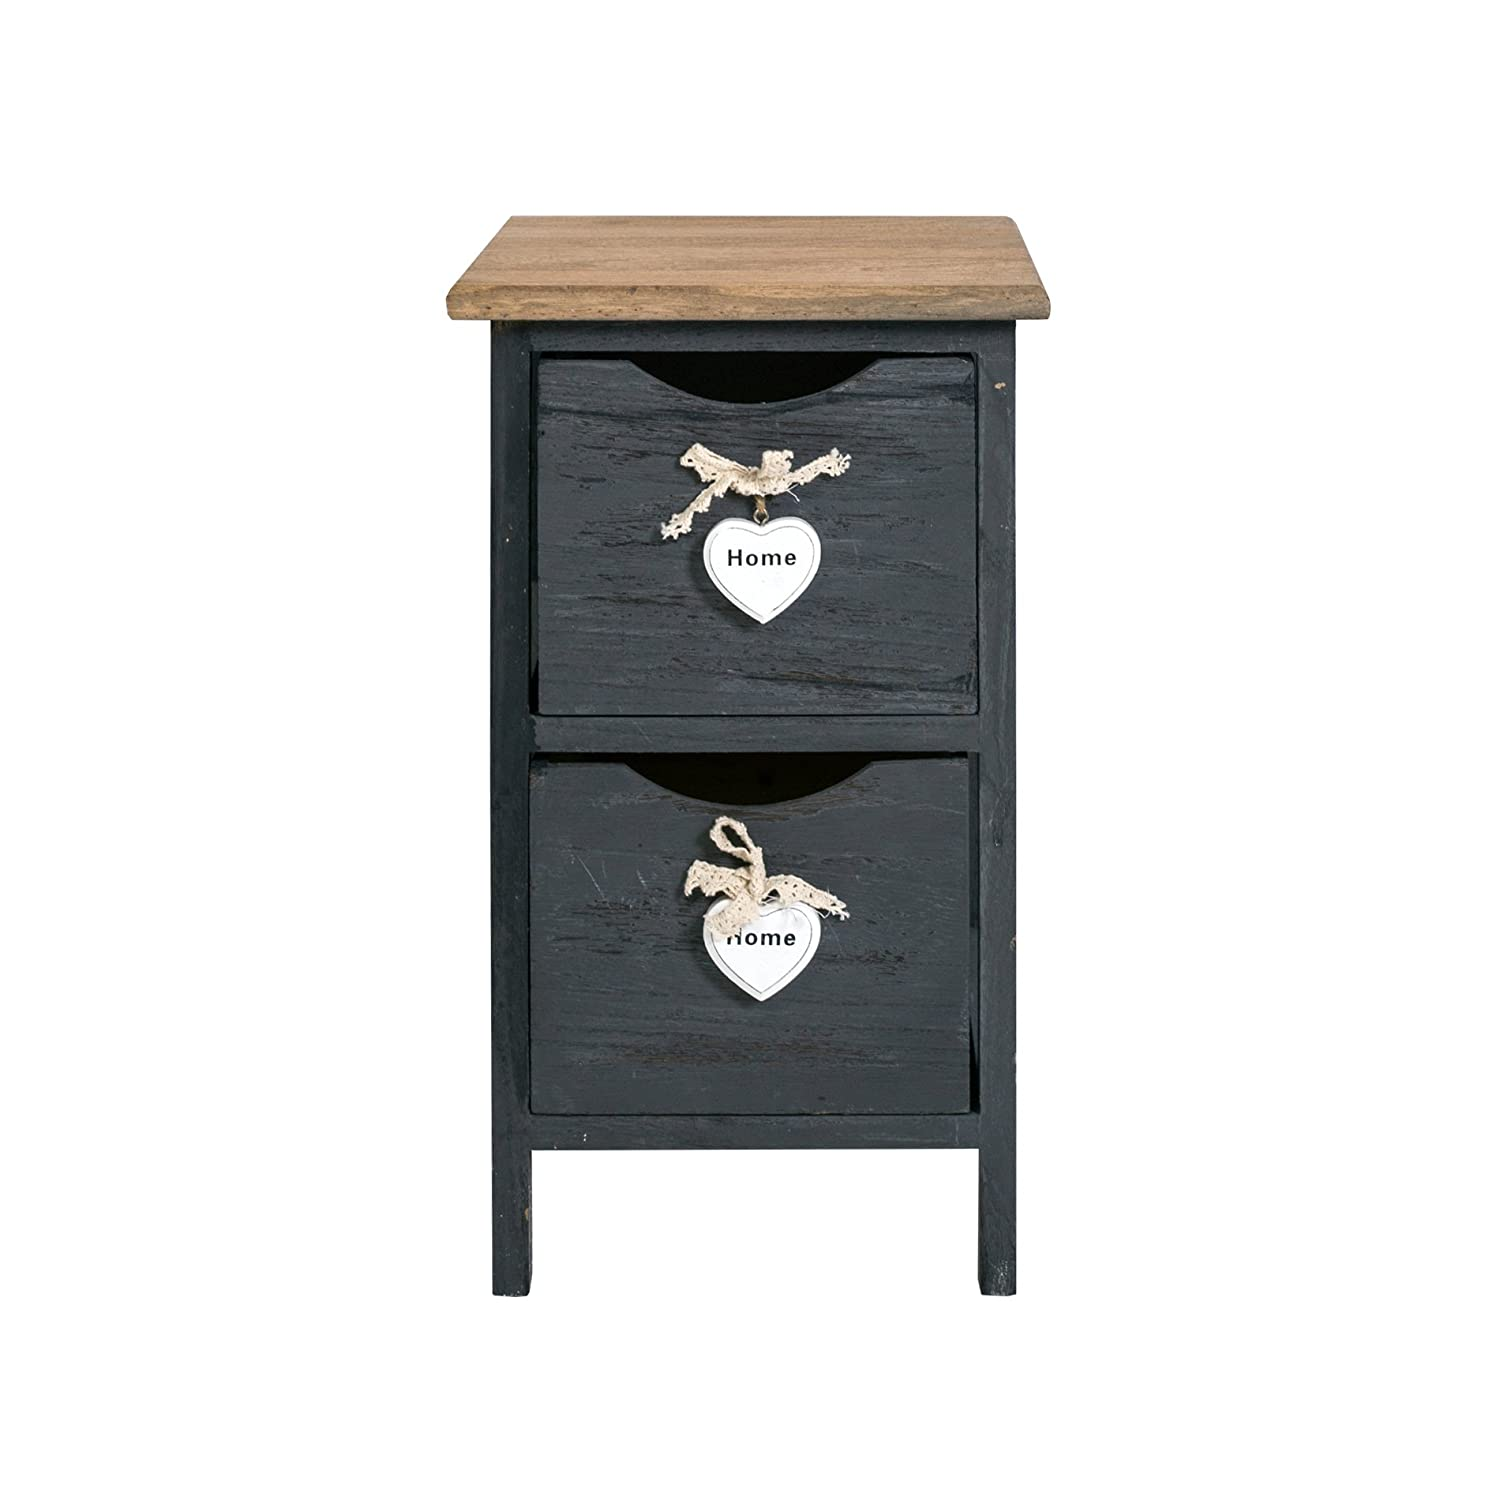 Mobili Shabby Chic A Roma.Rebecca Mobili Cabinet Furniture Bedside 2 Drawers Wood Grey Heart Shabby Chic Vintage Home Bedroom Bathroom 45 X 26 X 32 Cm H X W X D Art